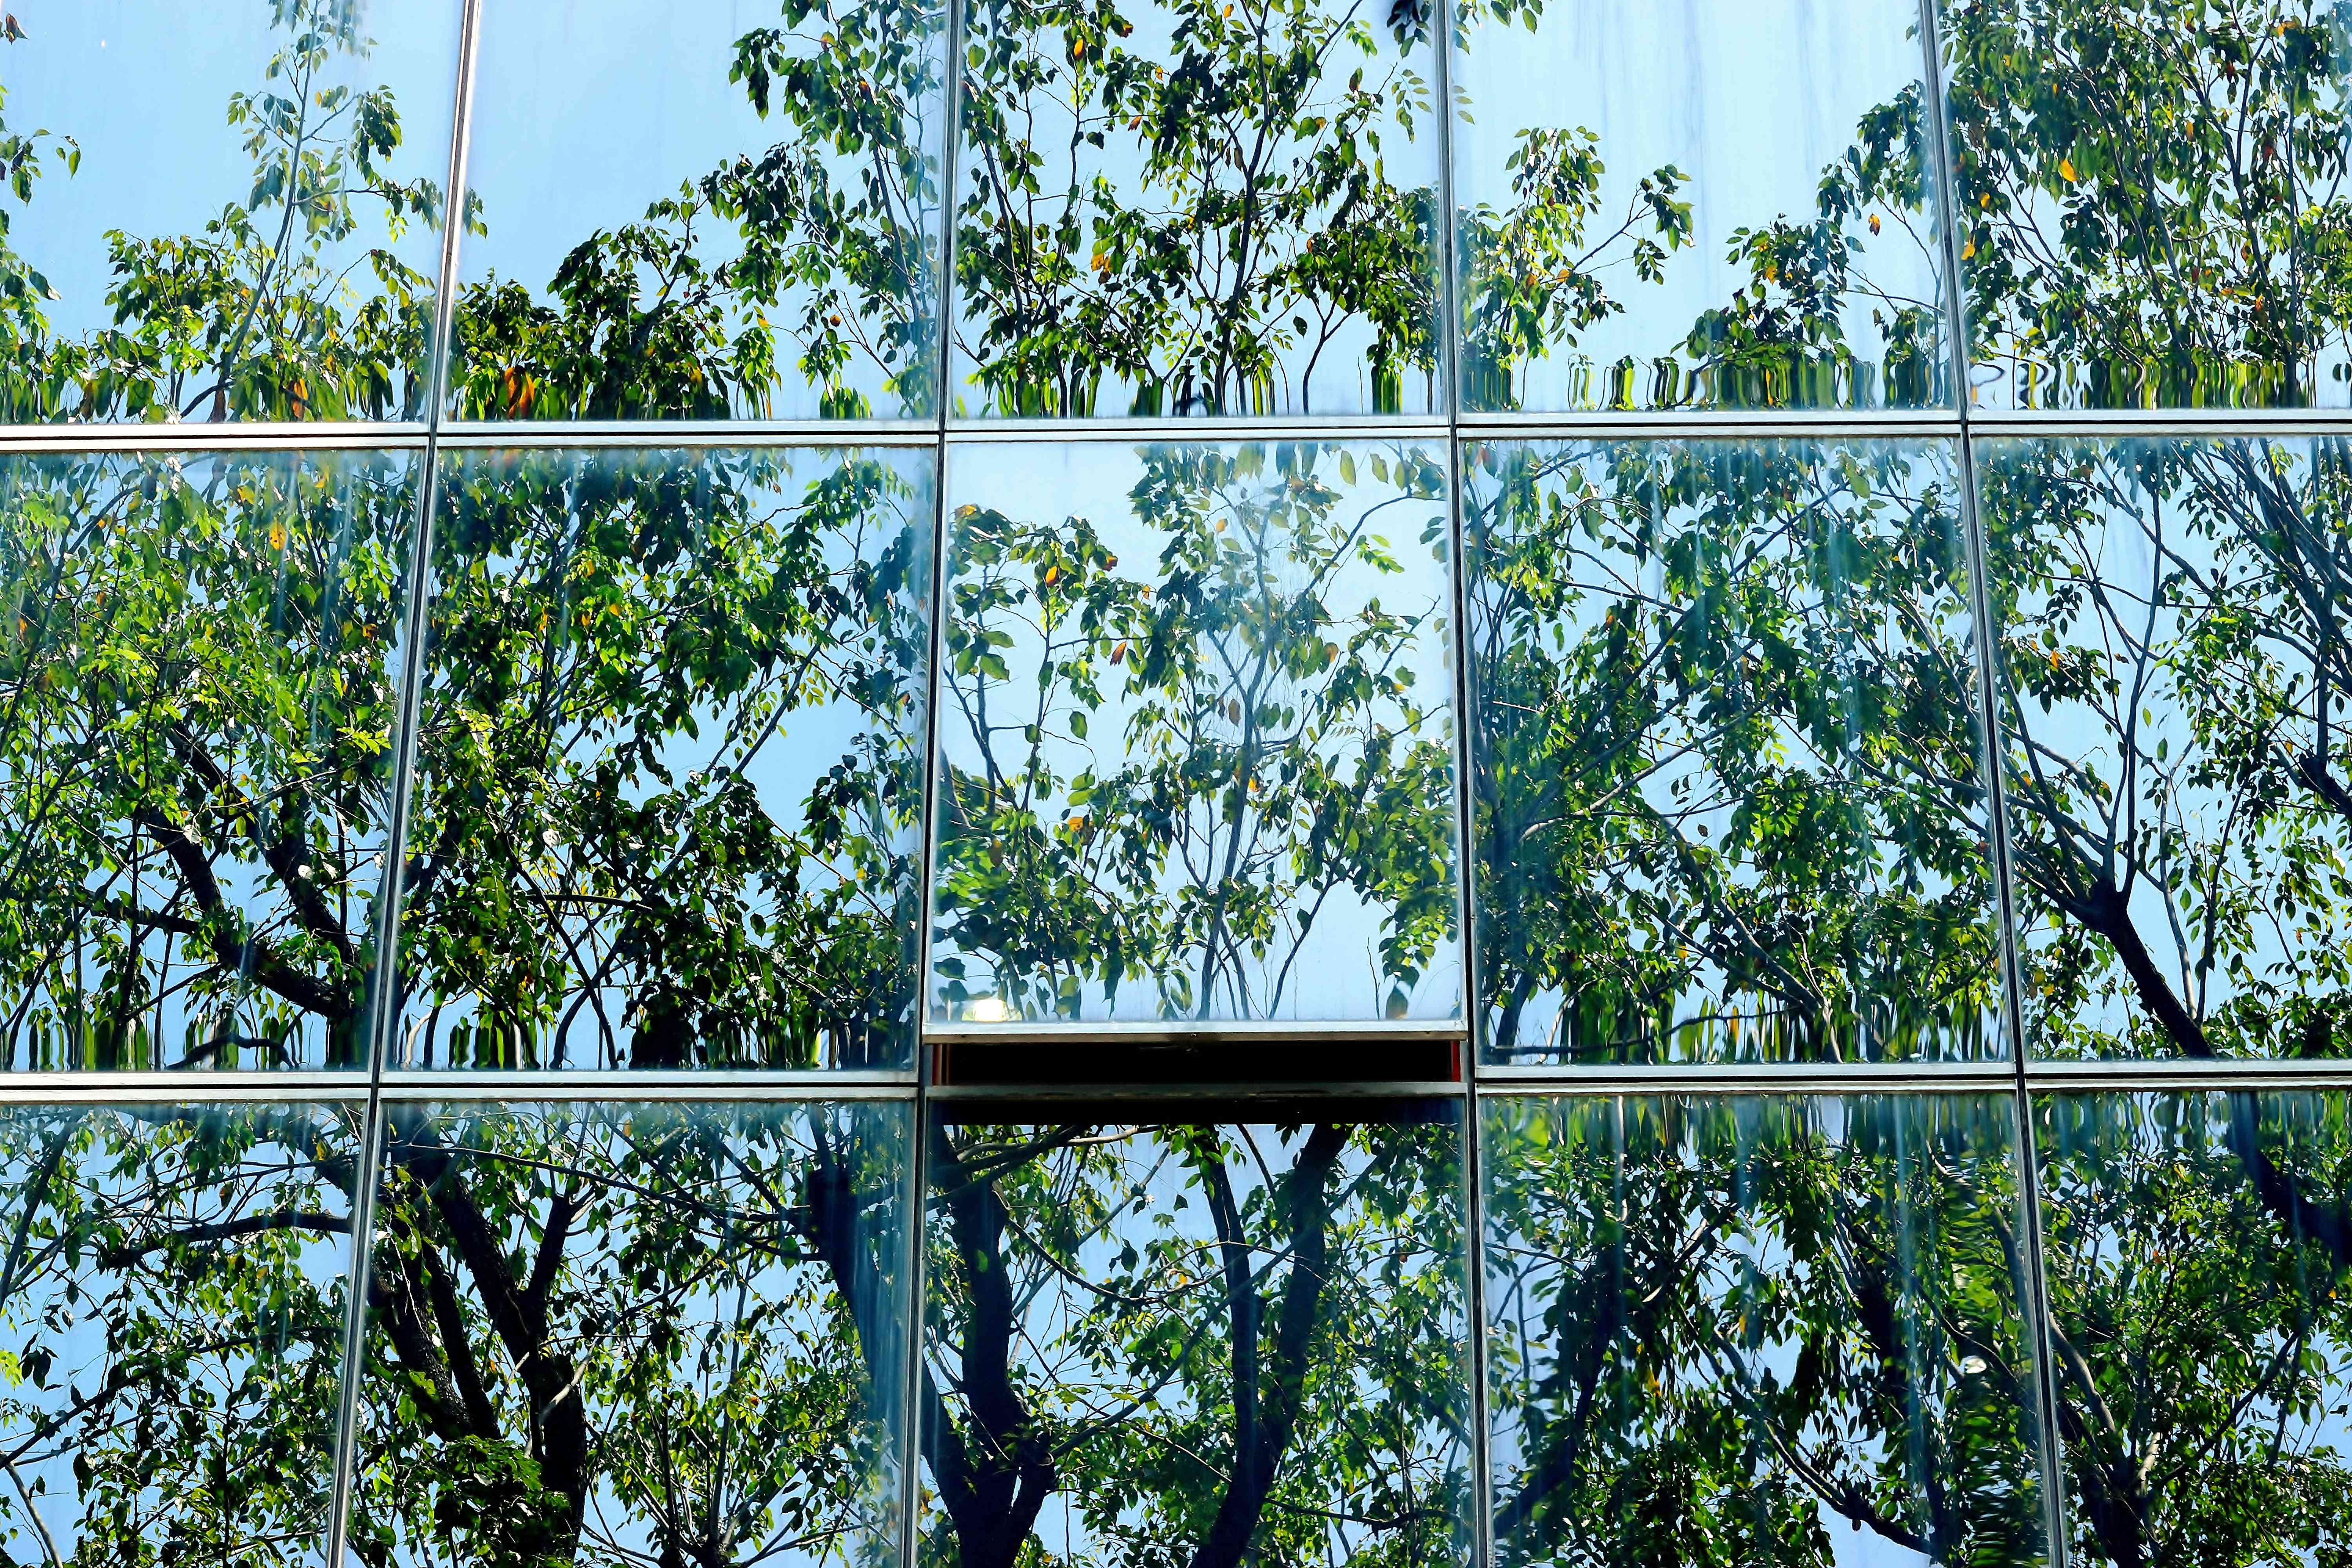 glass building reflecting trees